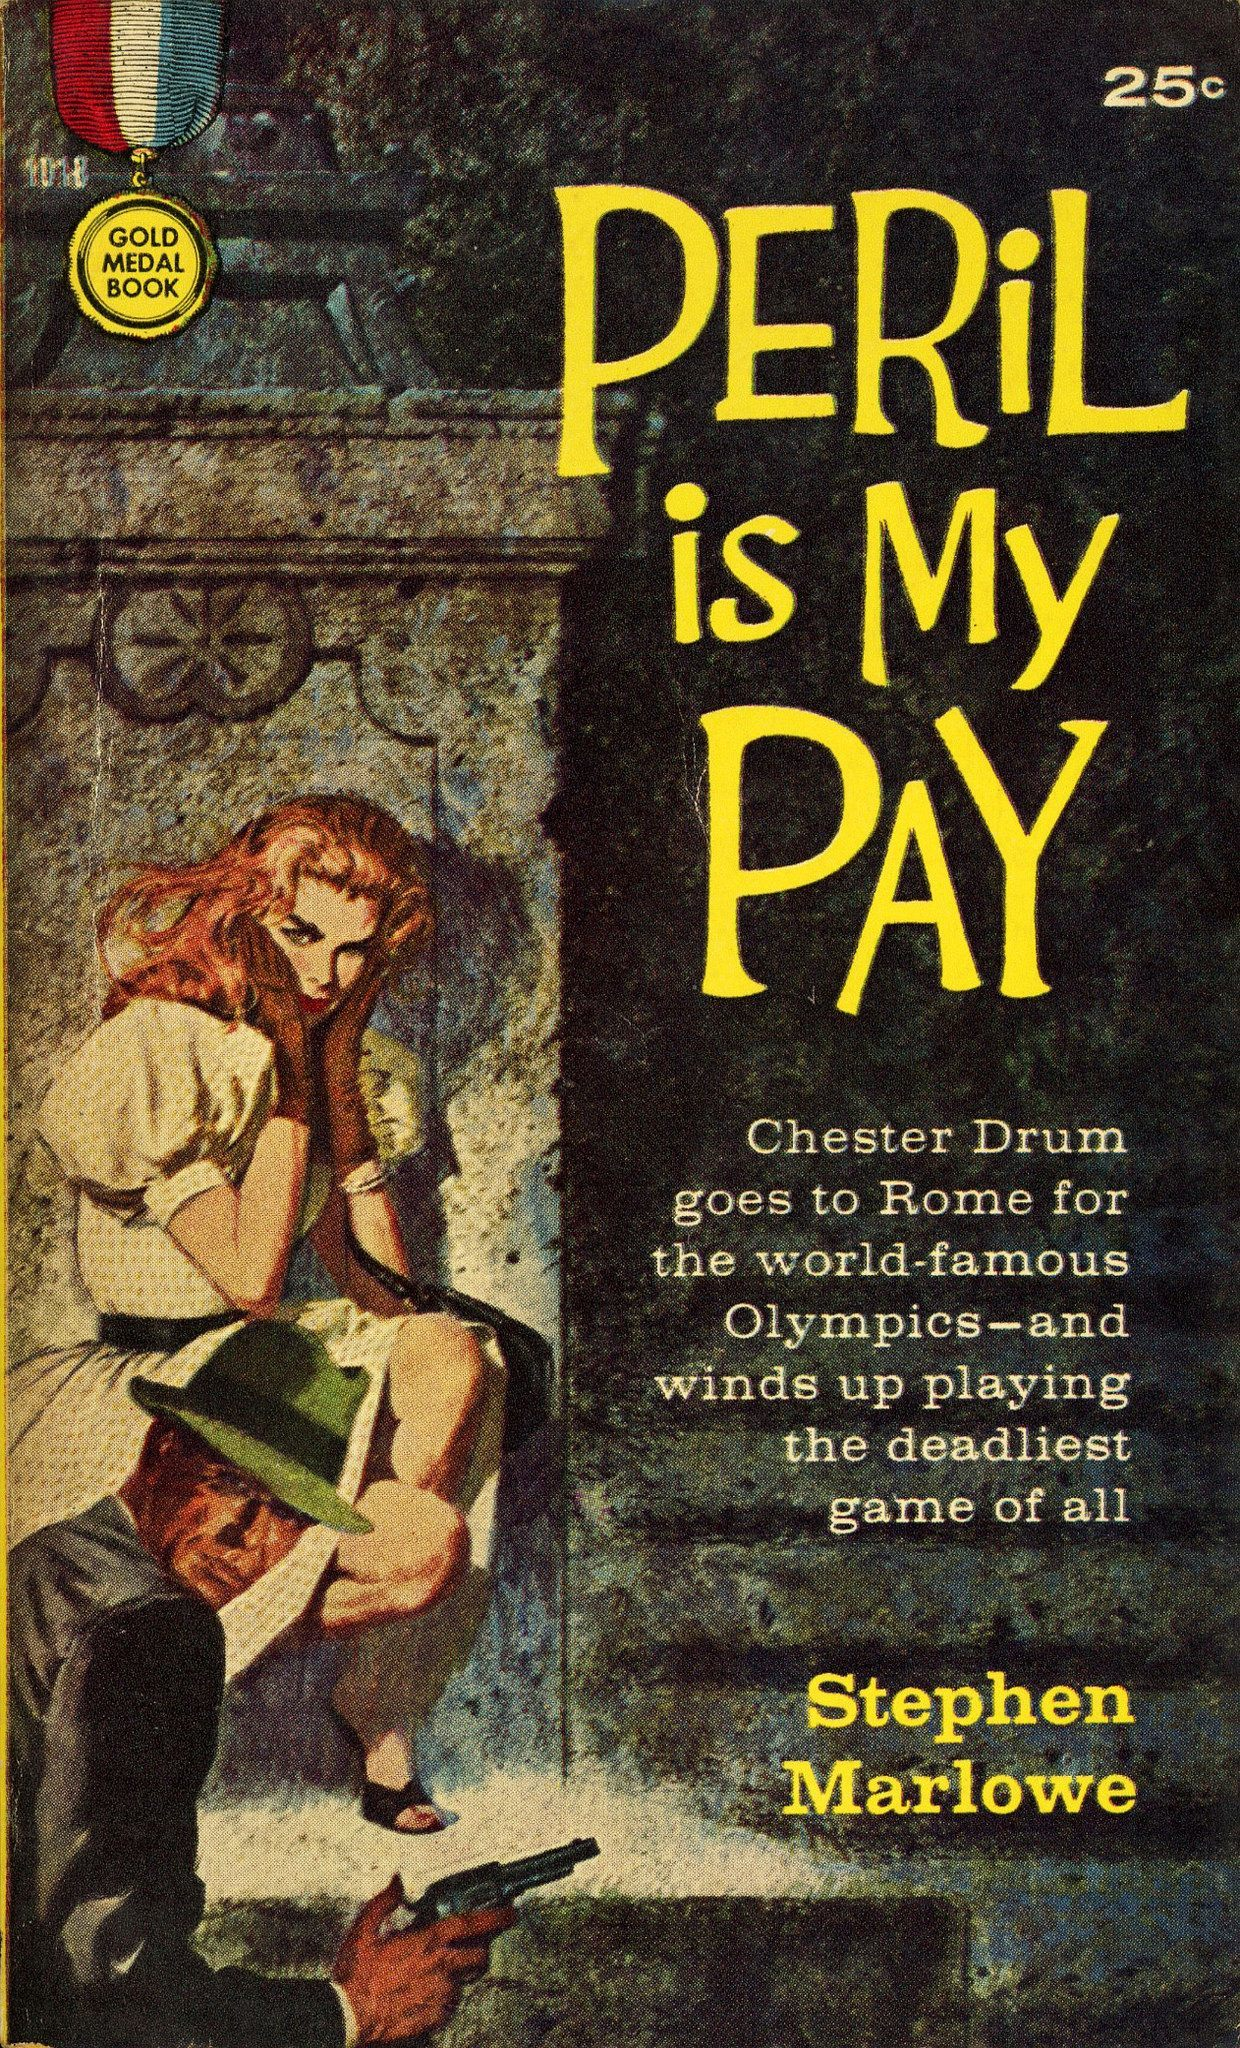 Peril is my Pay by Stephen Marlowe, 1960.